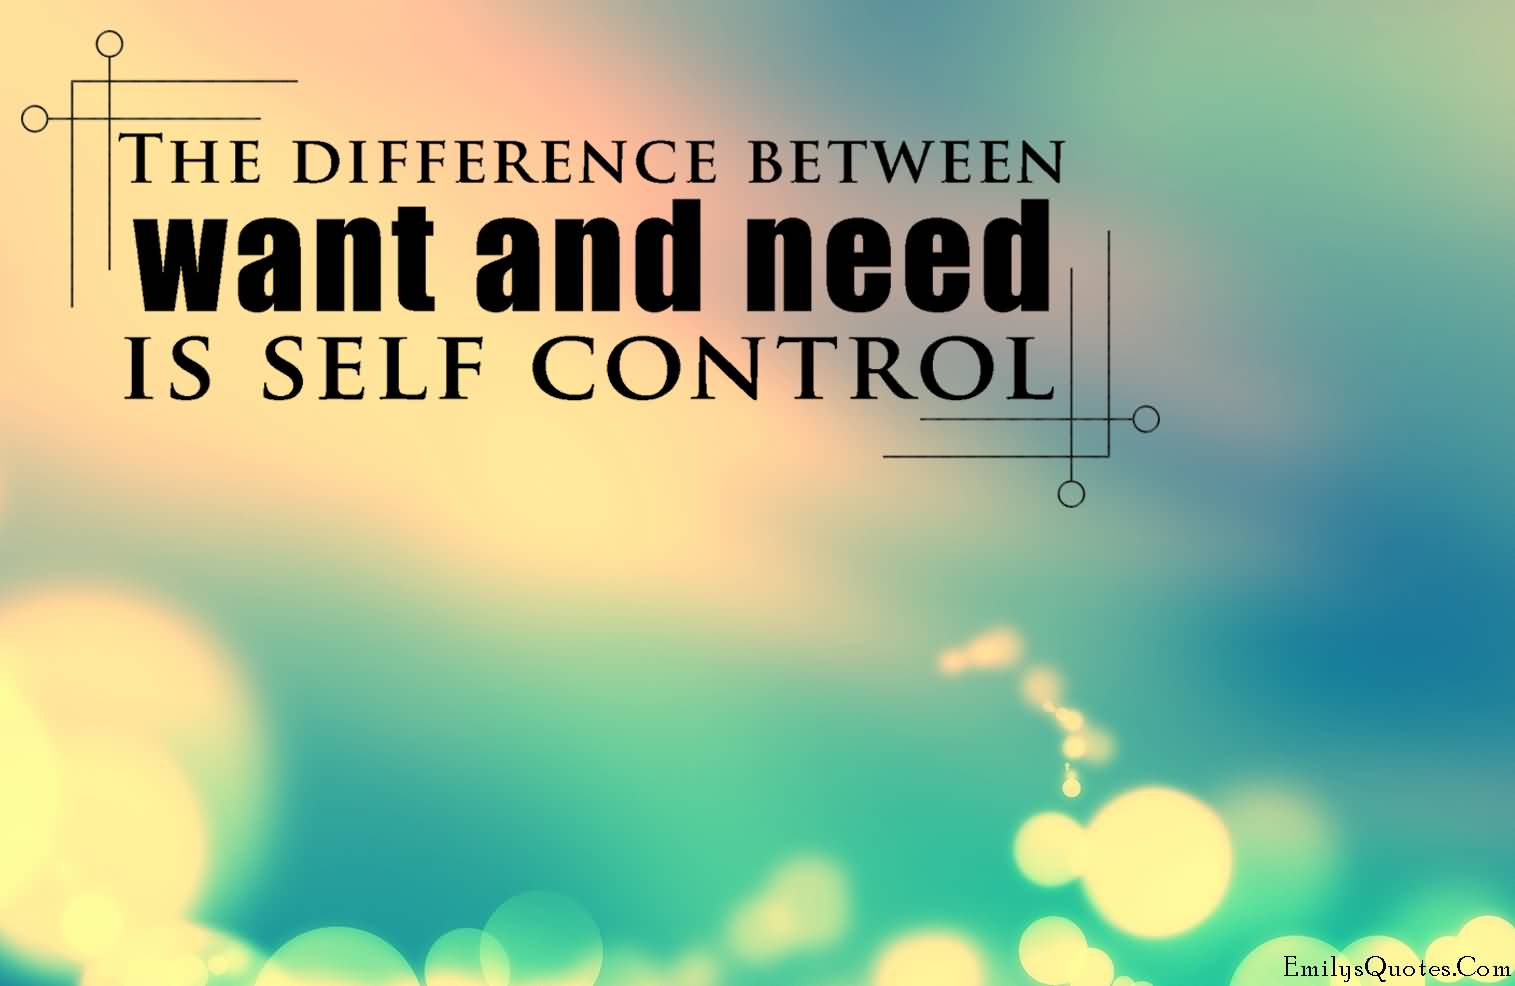 The difference between want and need is self control